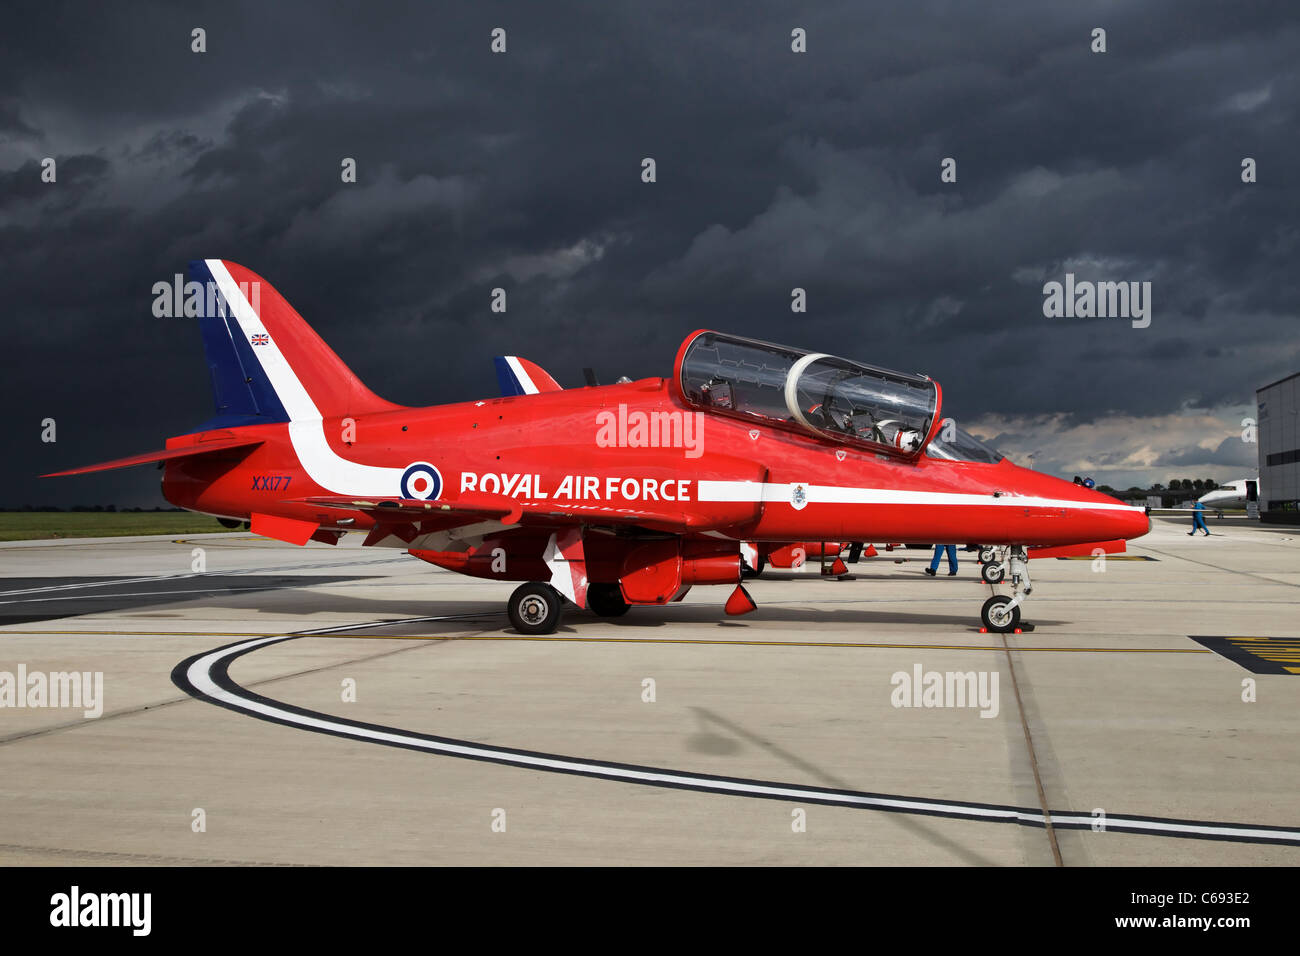 A Bae systems Hawk T1 training aircraft of the RAF's Red Arrows aerobatic team Red One the team leaders aircraft - Stock Image